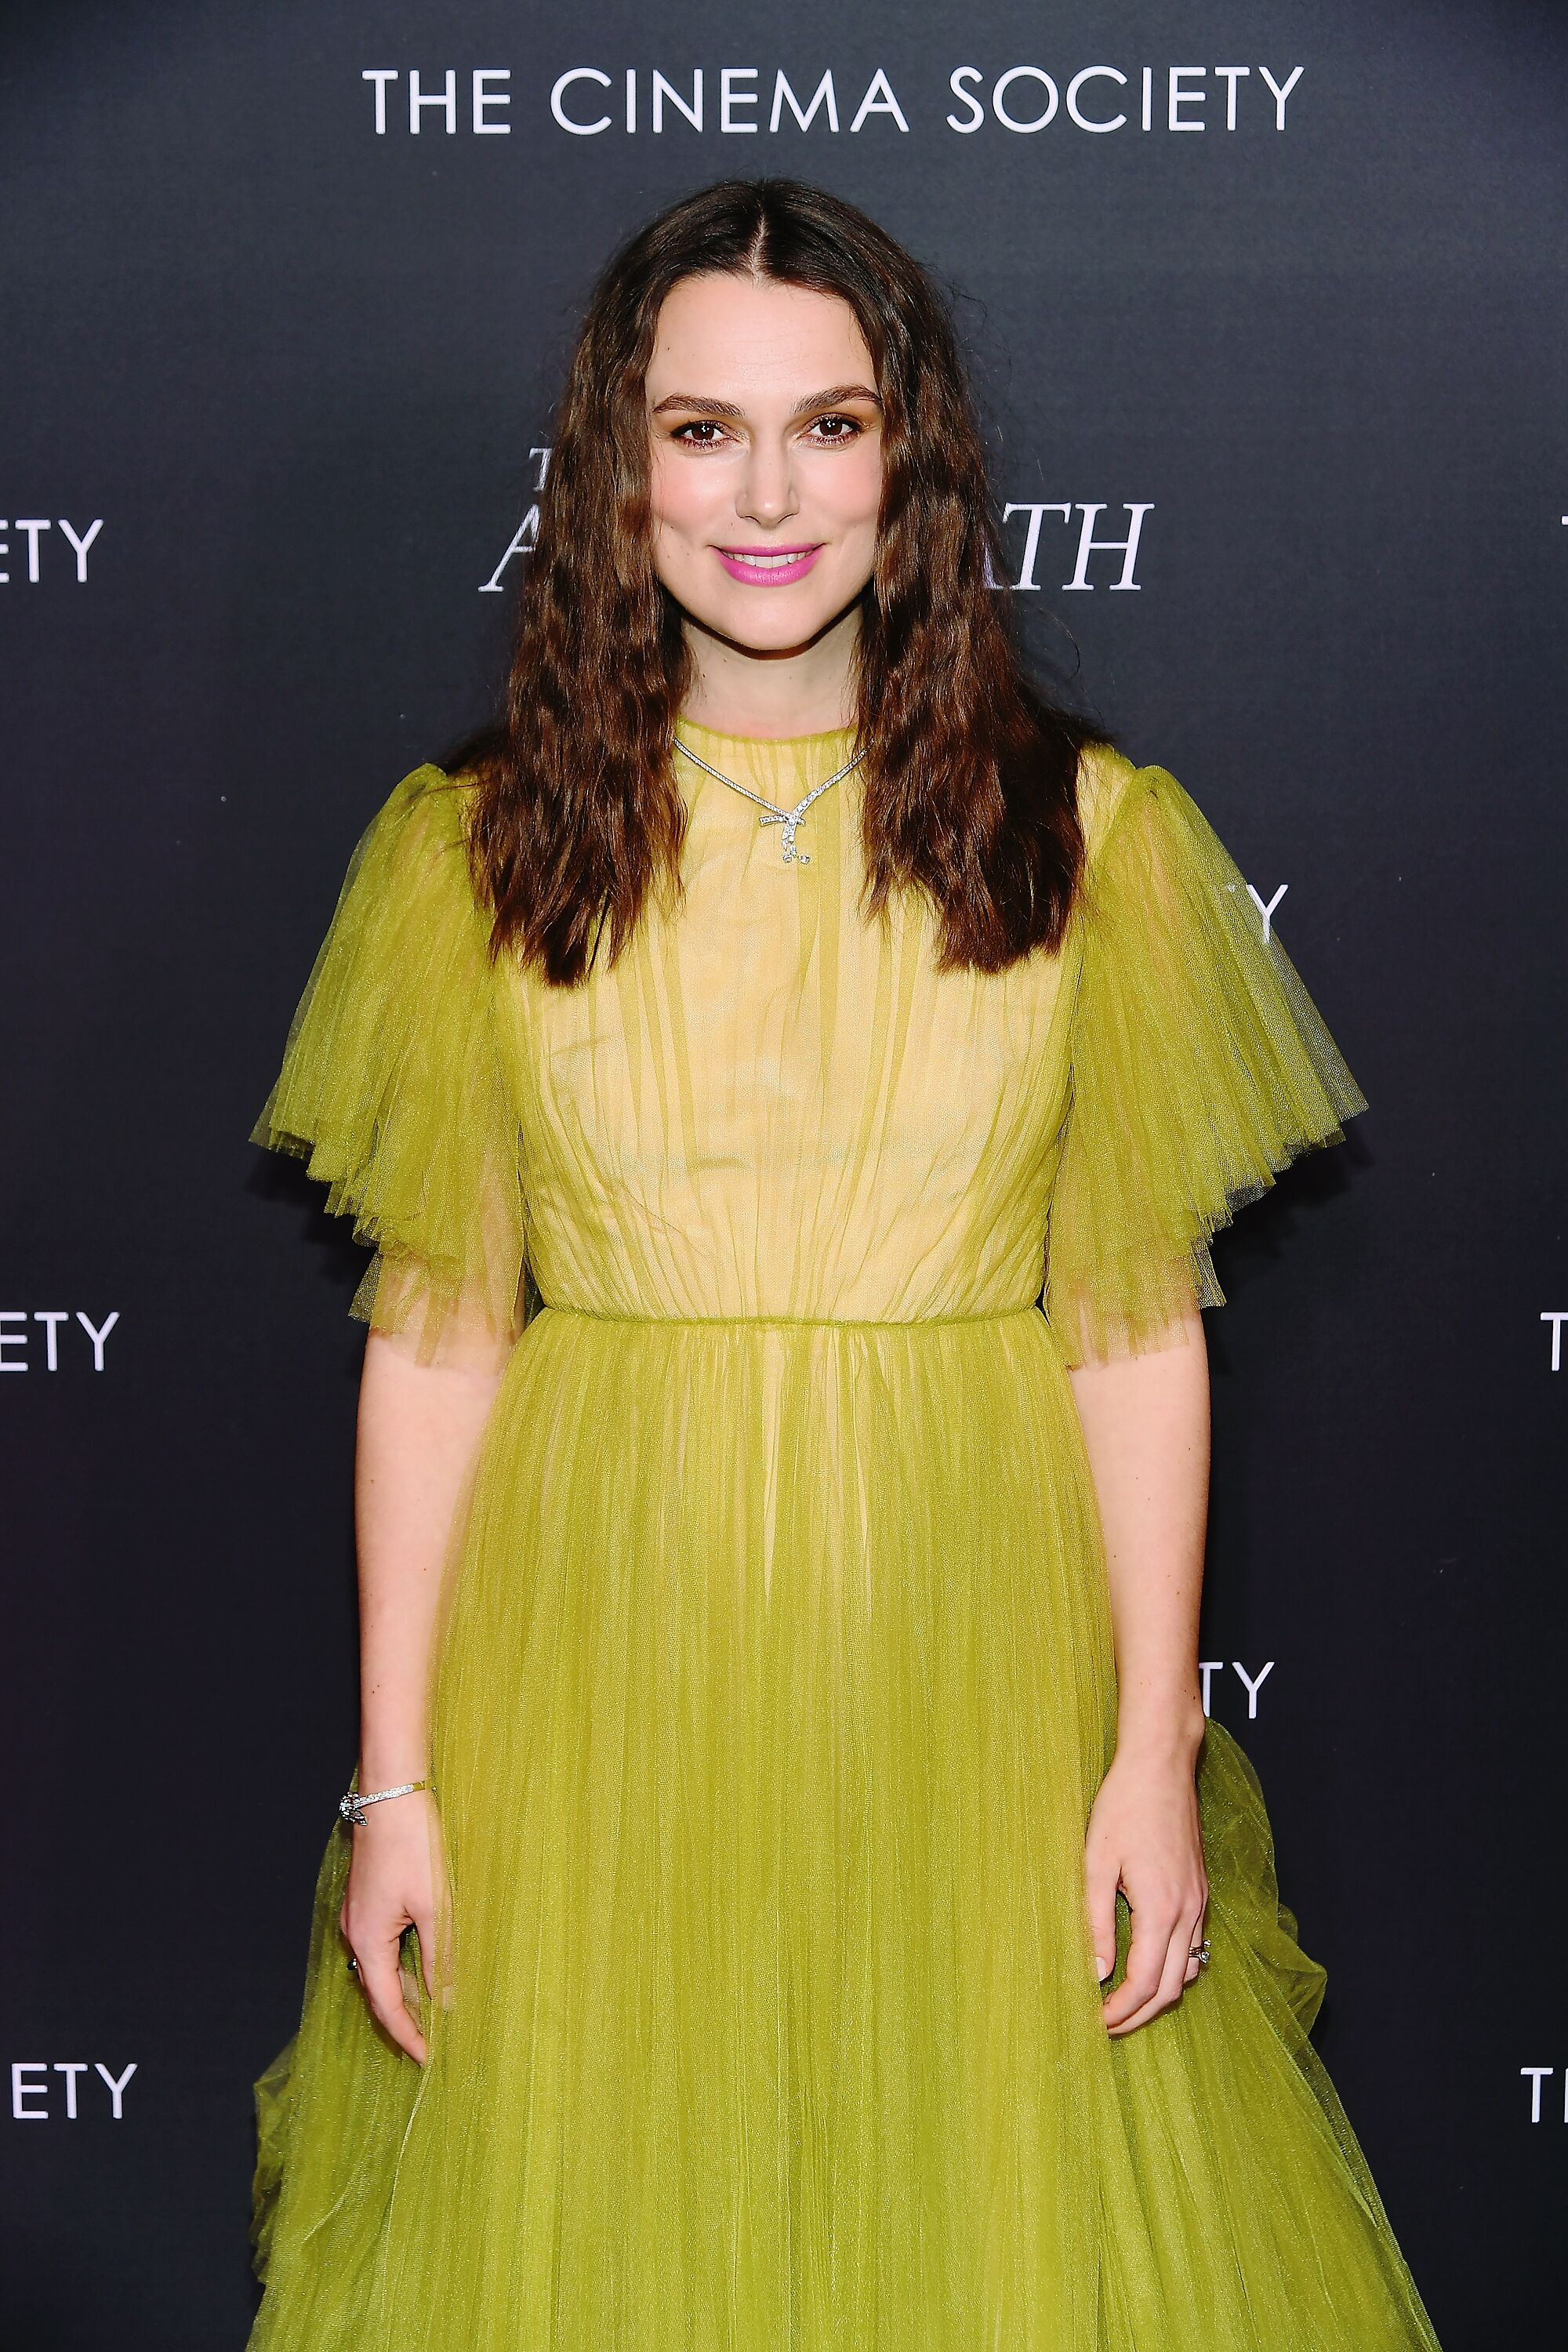 Keira Knightley at The Cimena Society event. | Source: Getty Images